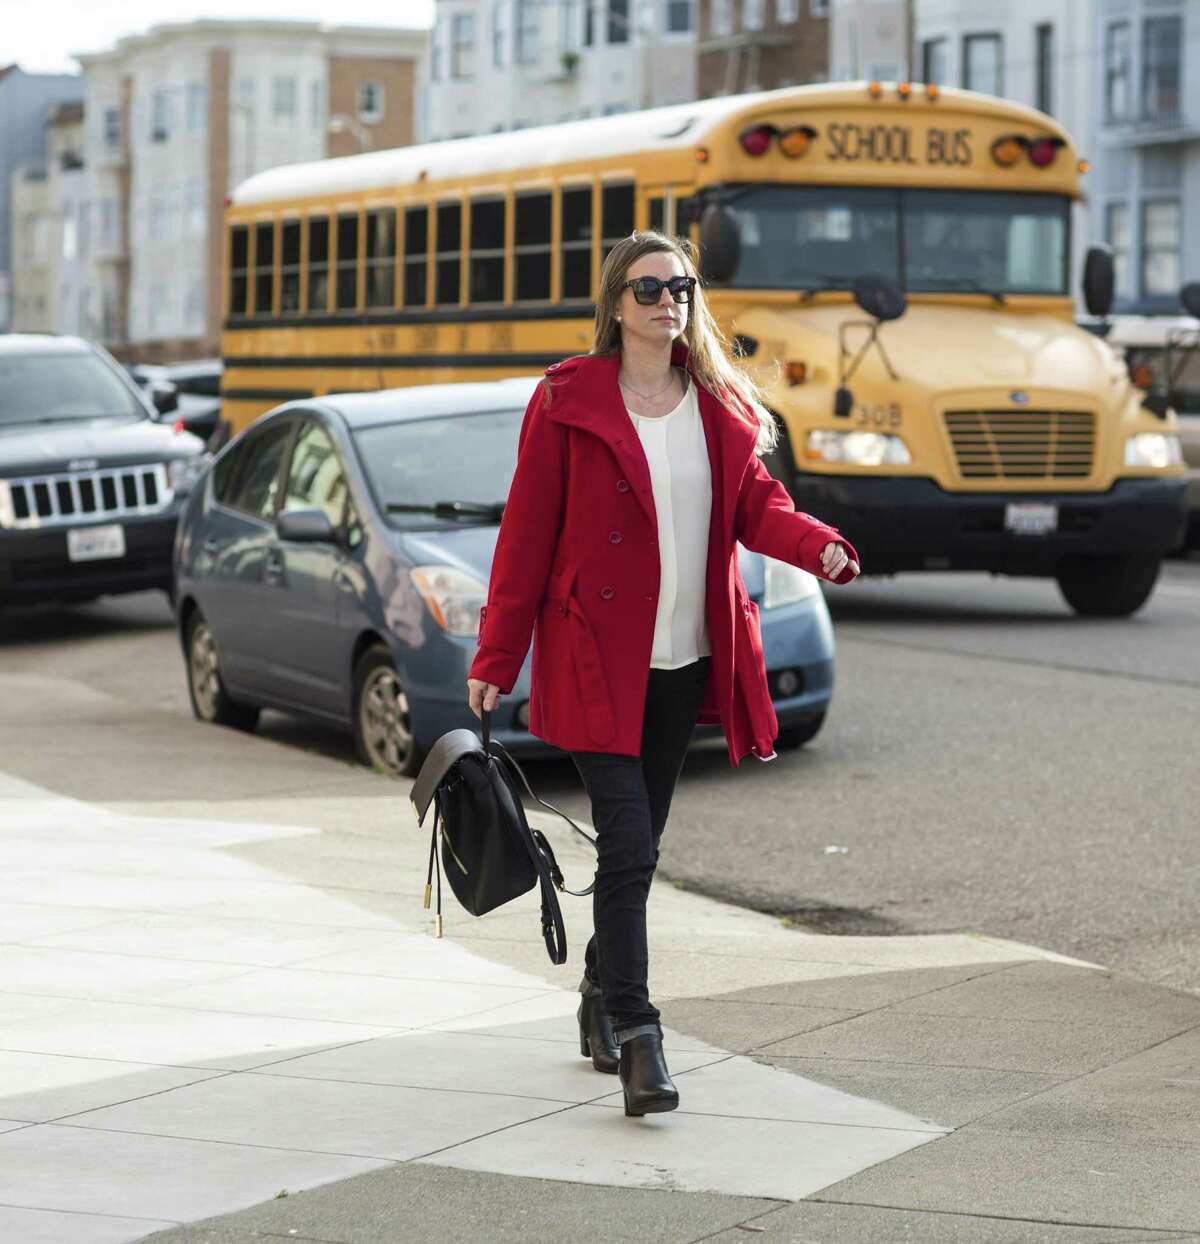 Hilary Elfman, a special education teacher at a city elementary school, walks home after work from her job in Pacific Heights to her parent's apartment in the Marina District in San Francisco, Calif., on Friday, February 10, 2017.